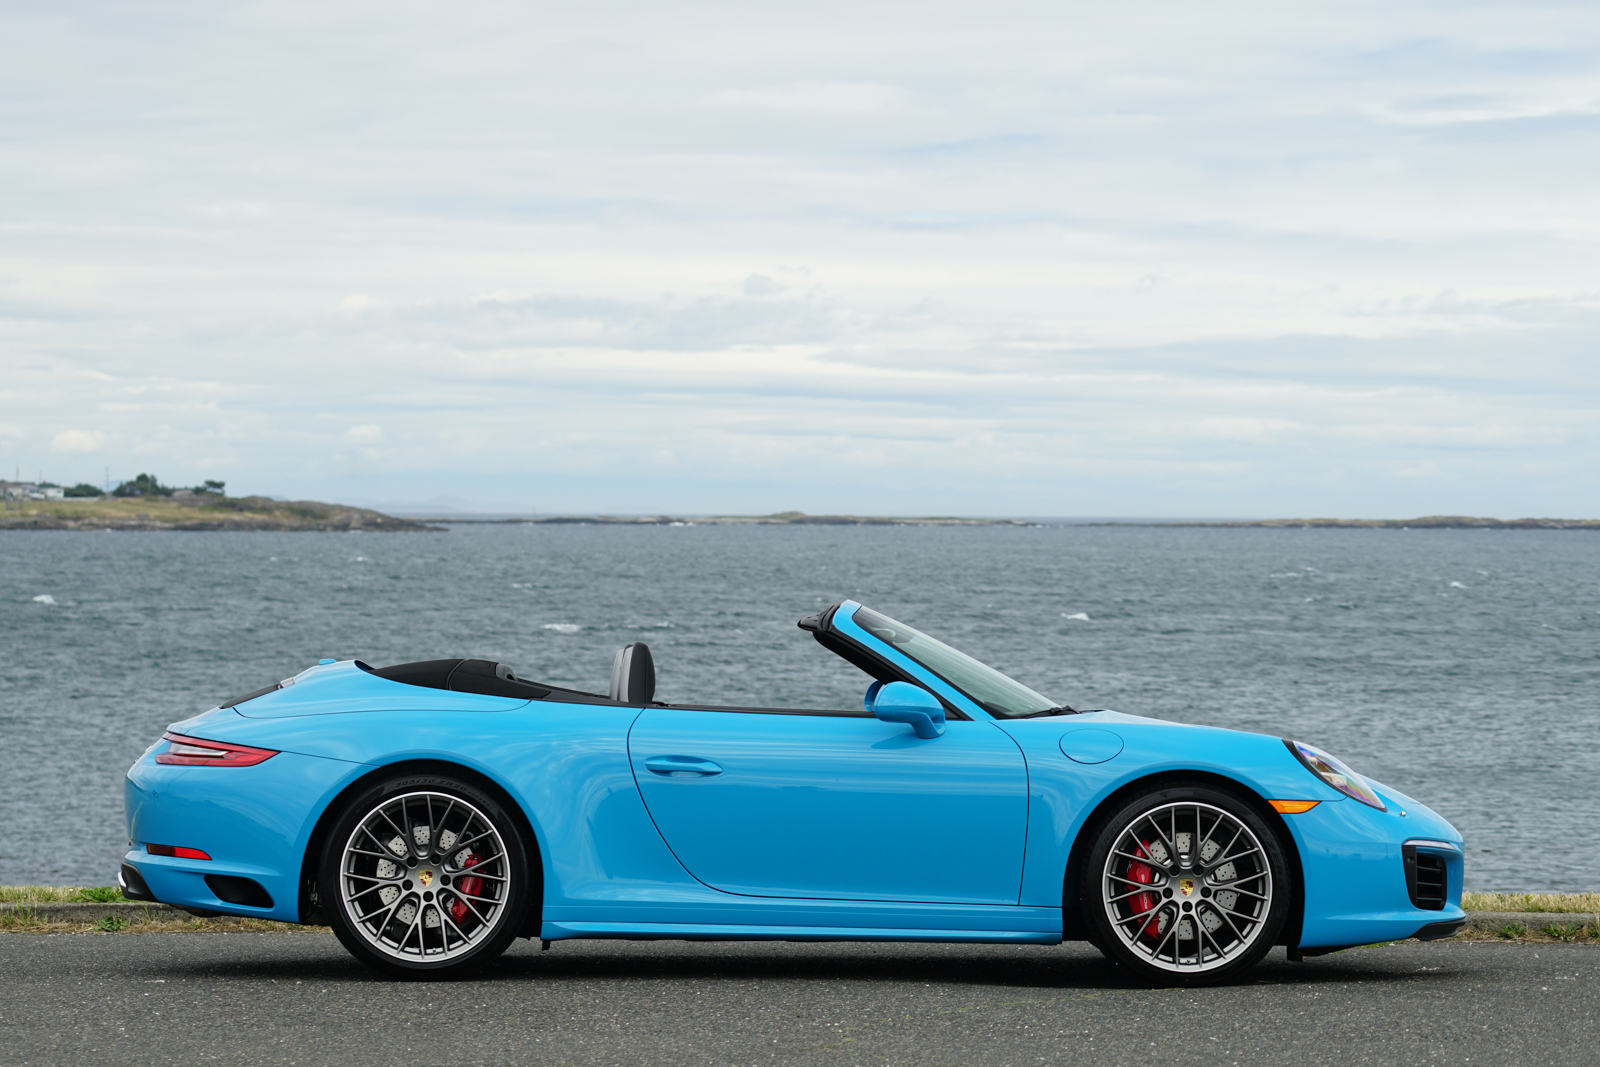 2017 Porsche 911 Carrera 4S Cabriolet photo - 3